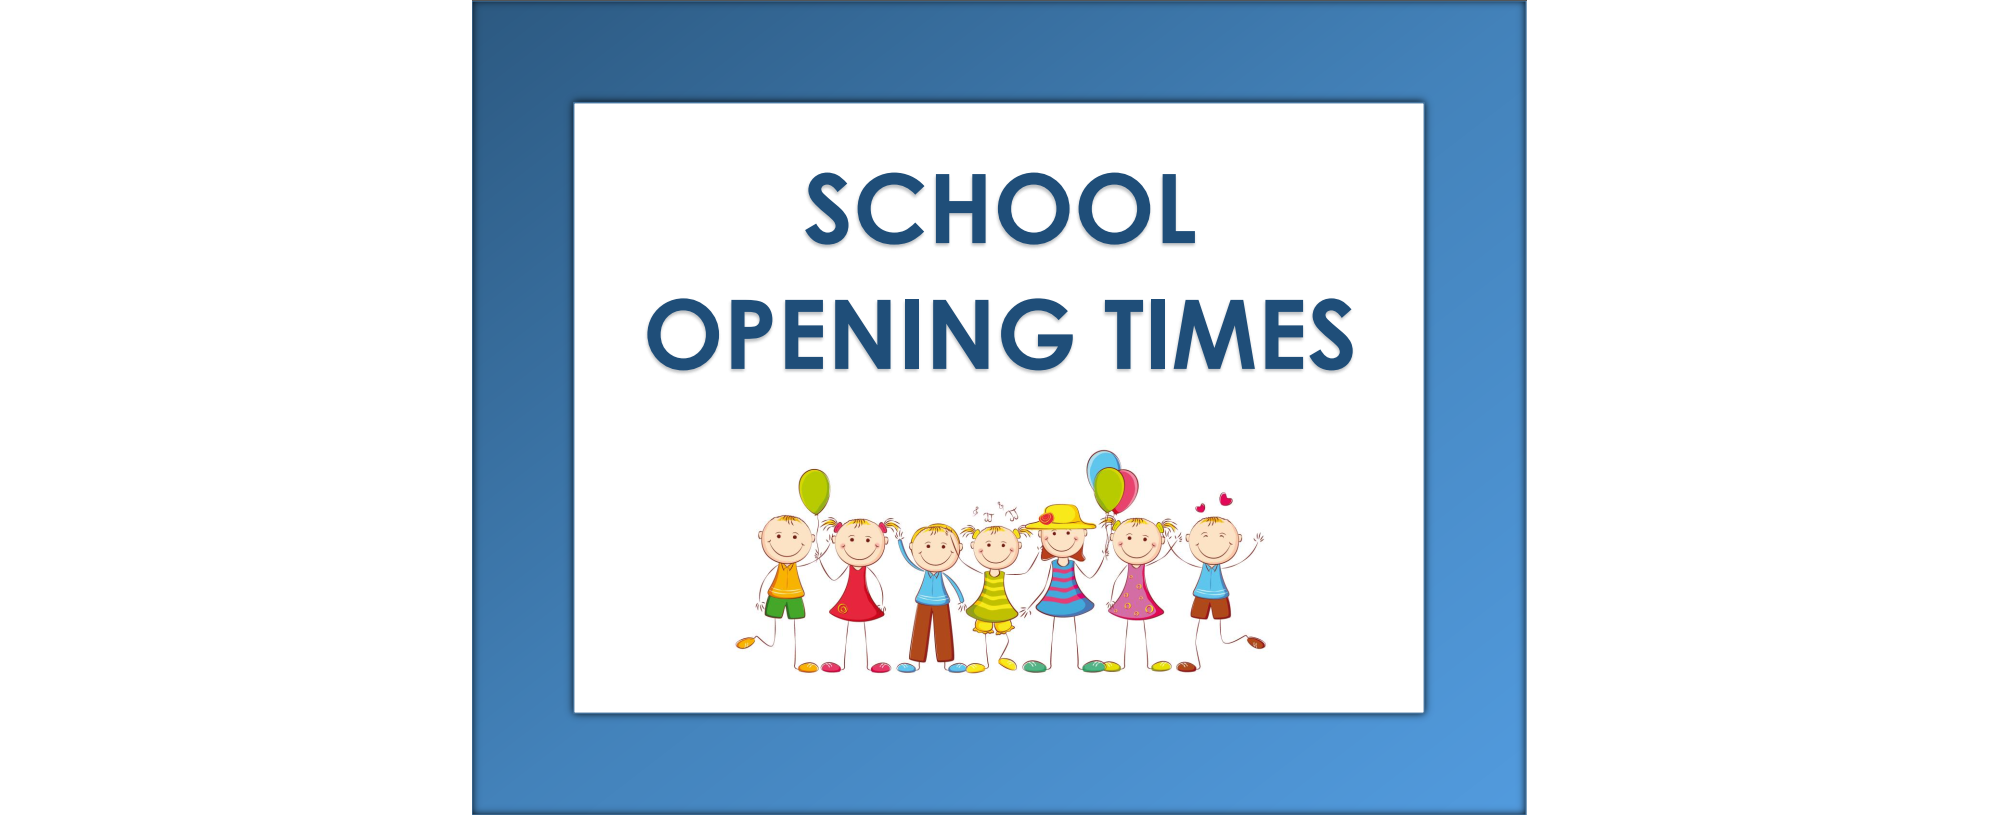 School Opening Times